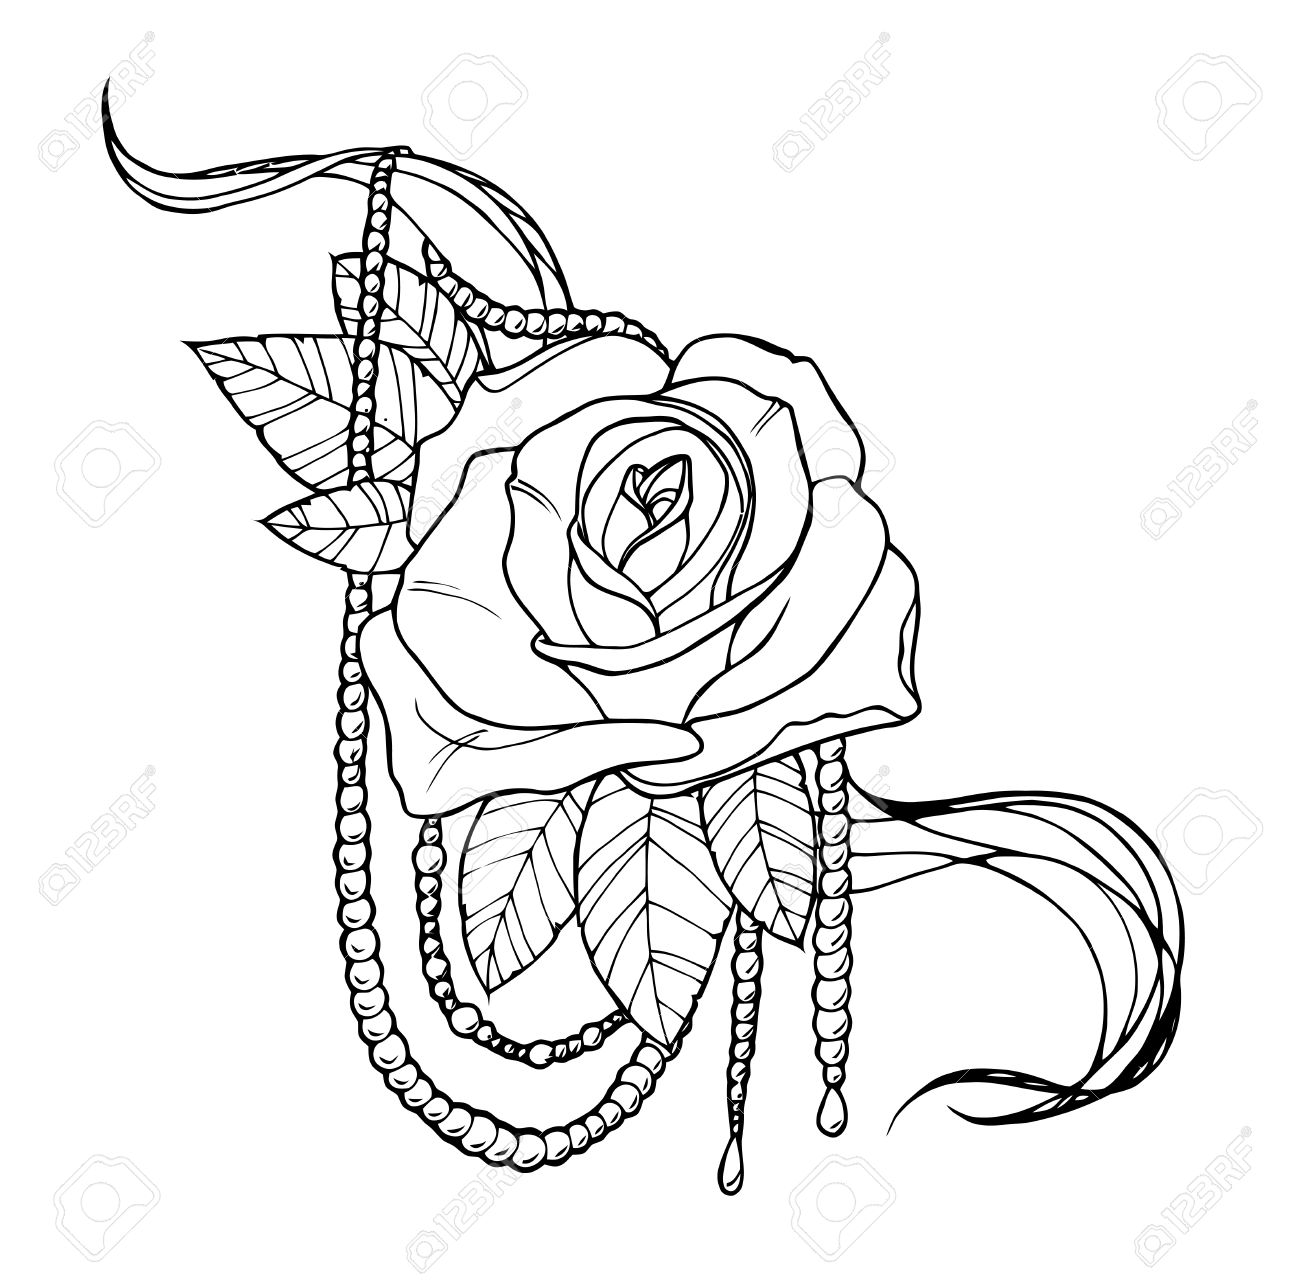 Beautiful rose tattoo outline black and white illustration stock vector 44133410